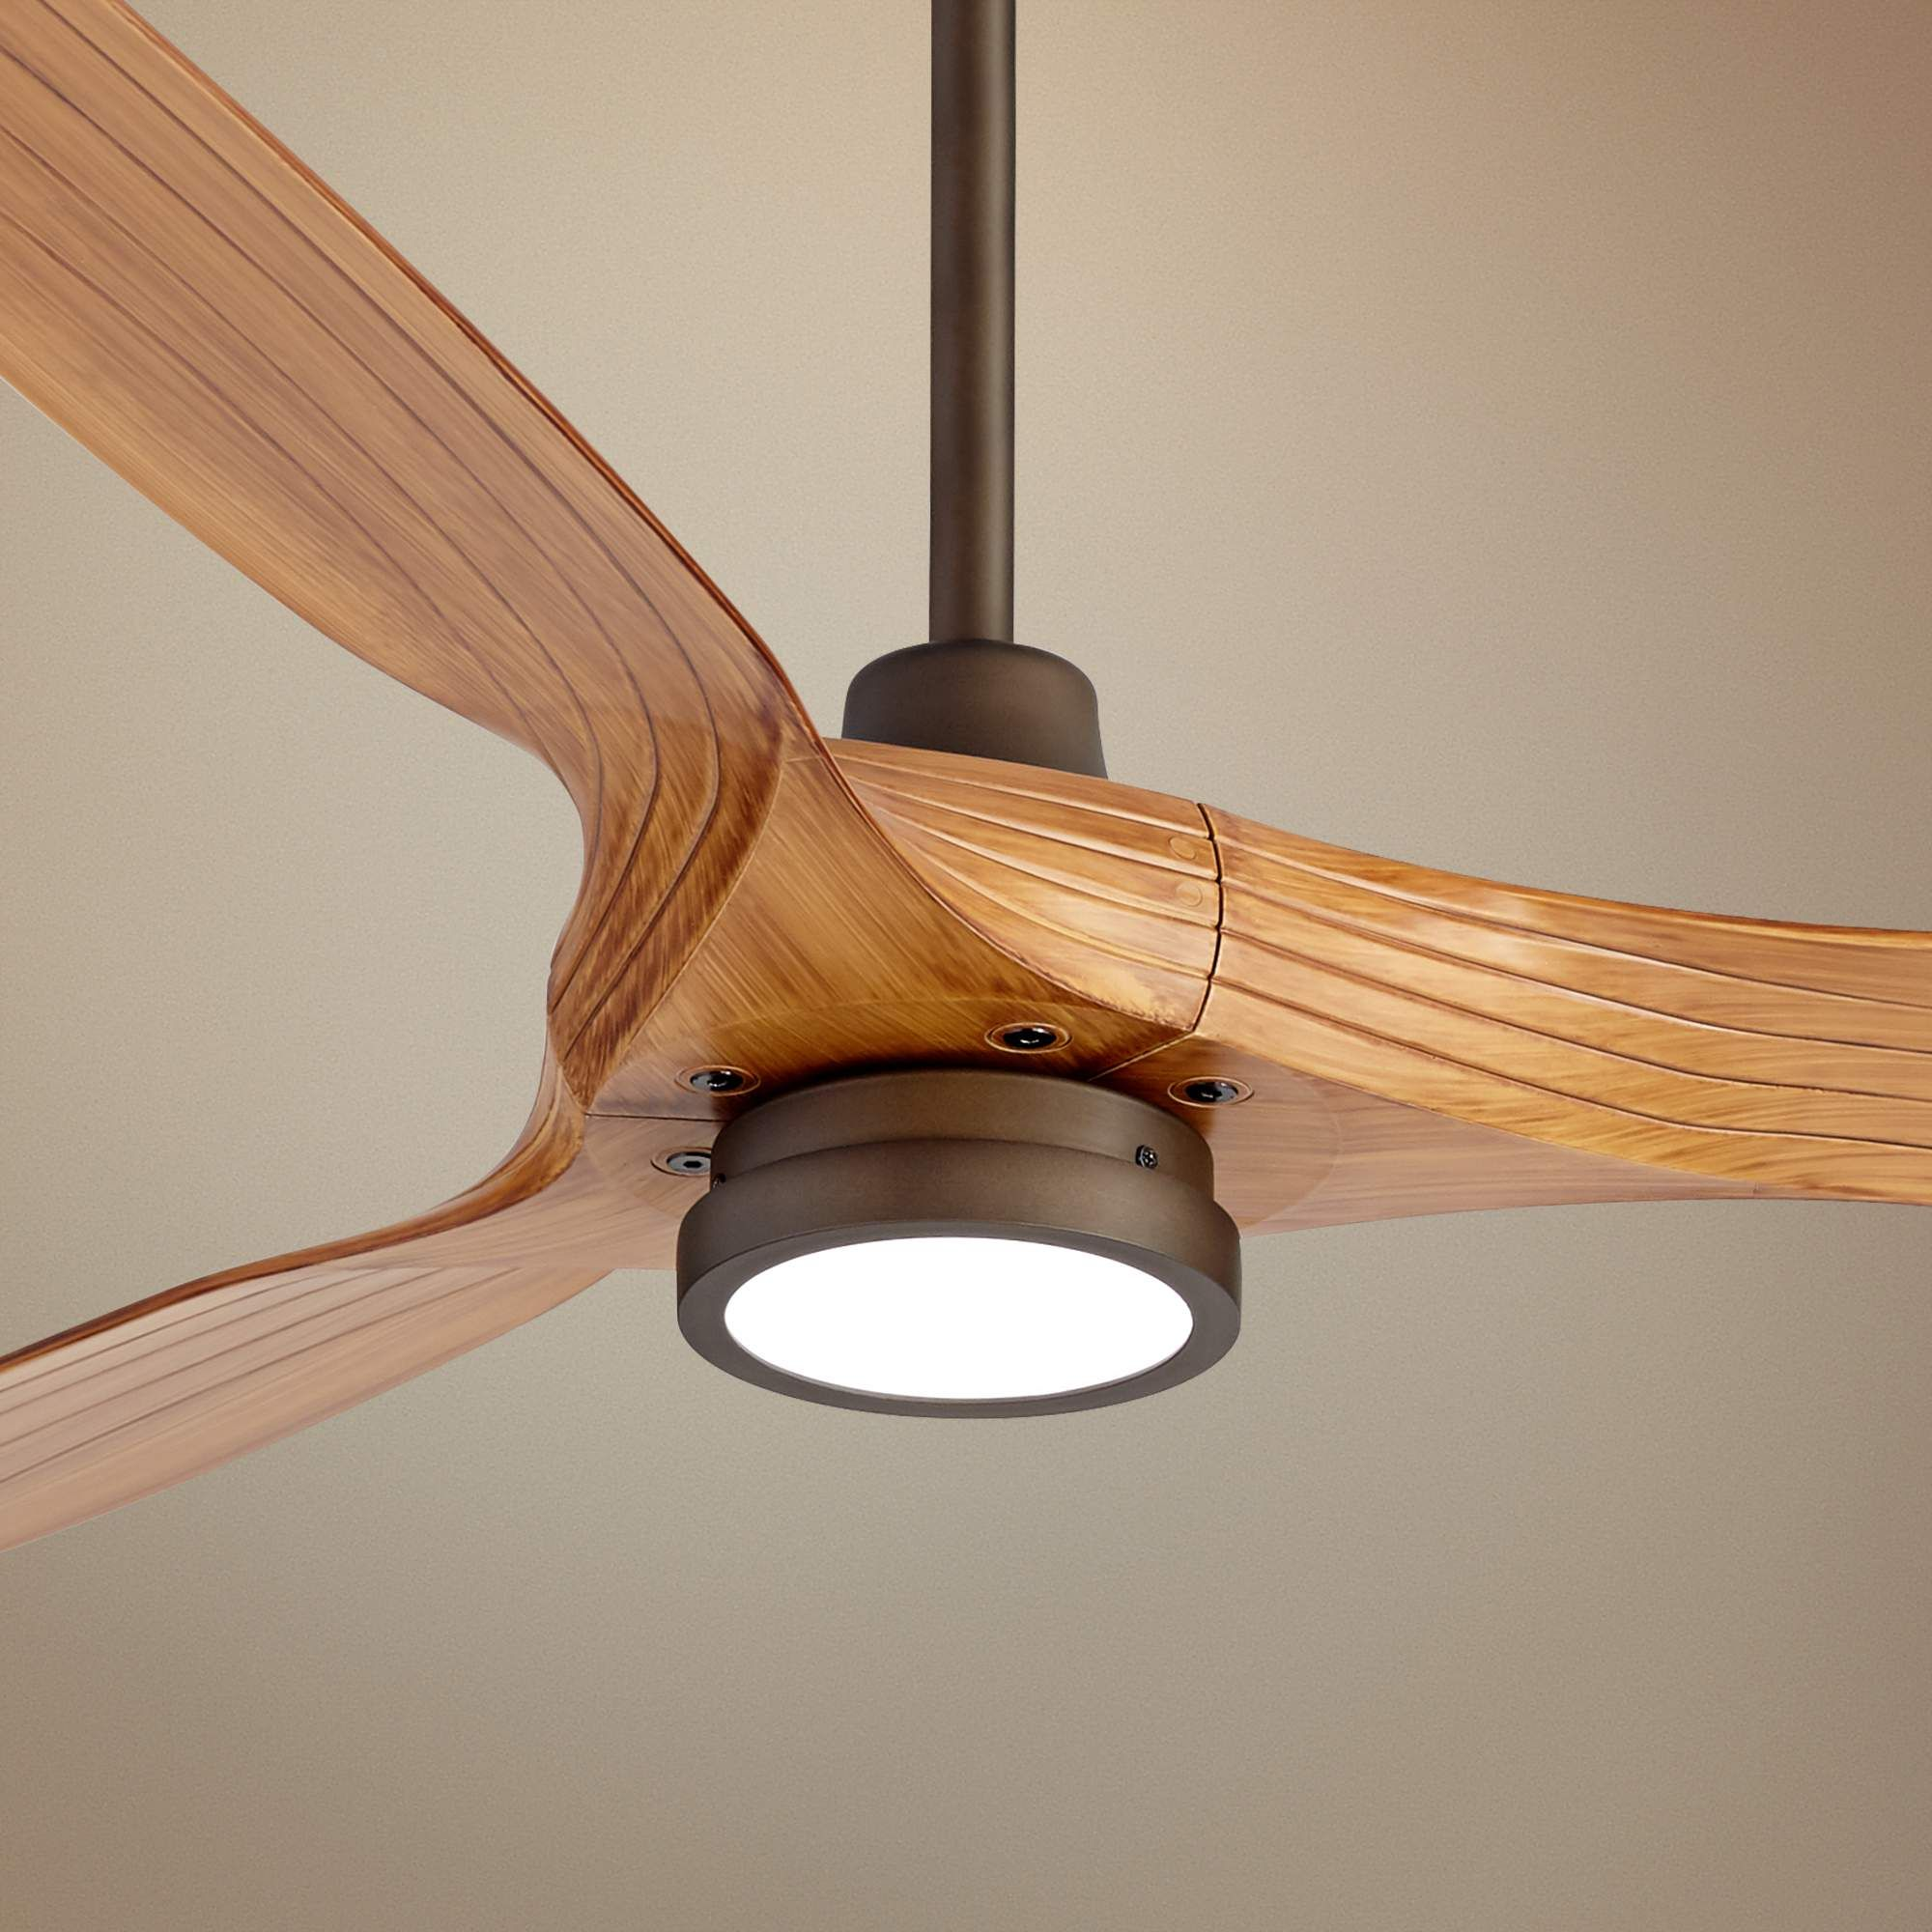 60 Aireon Bronze And Walnut Damp Rated Led Ceiling Fan 57w19